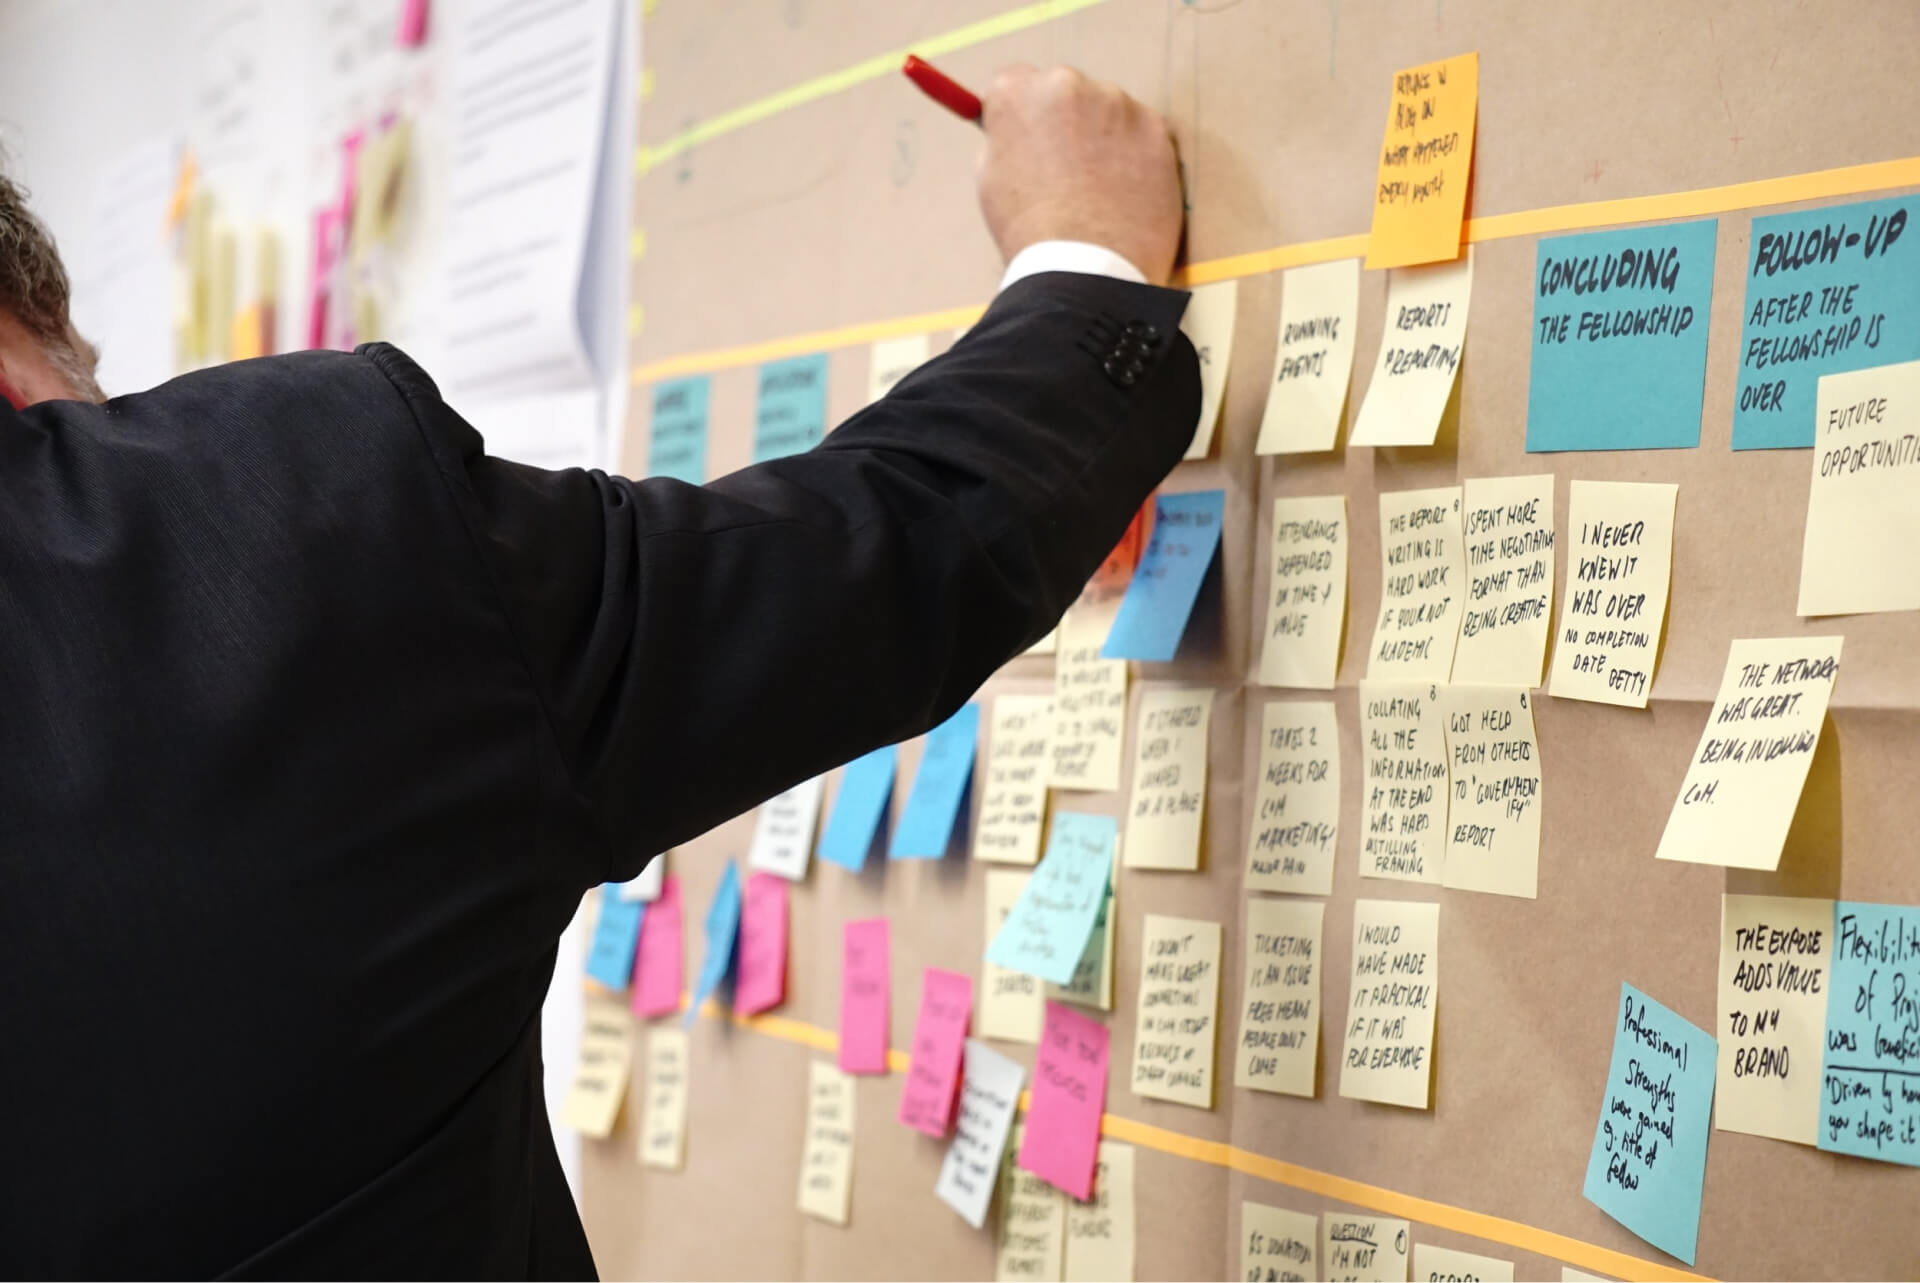 Design thinking workshops are the best place to discuss and align on user personas. They are also where user perosnas are put into practice, for example with user journey mapping as seen in this image.